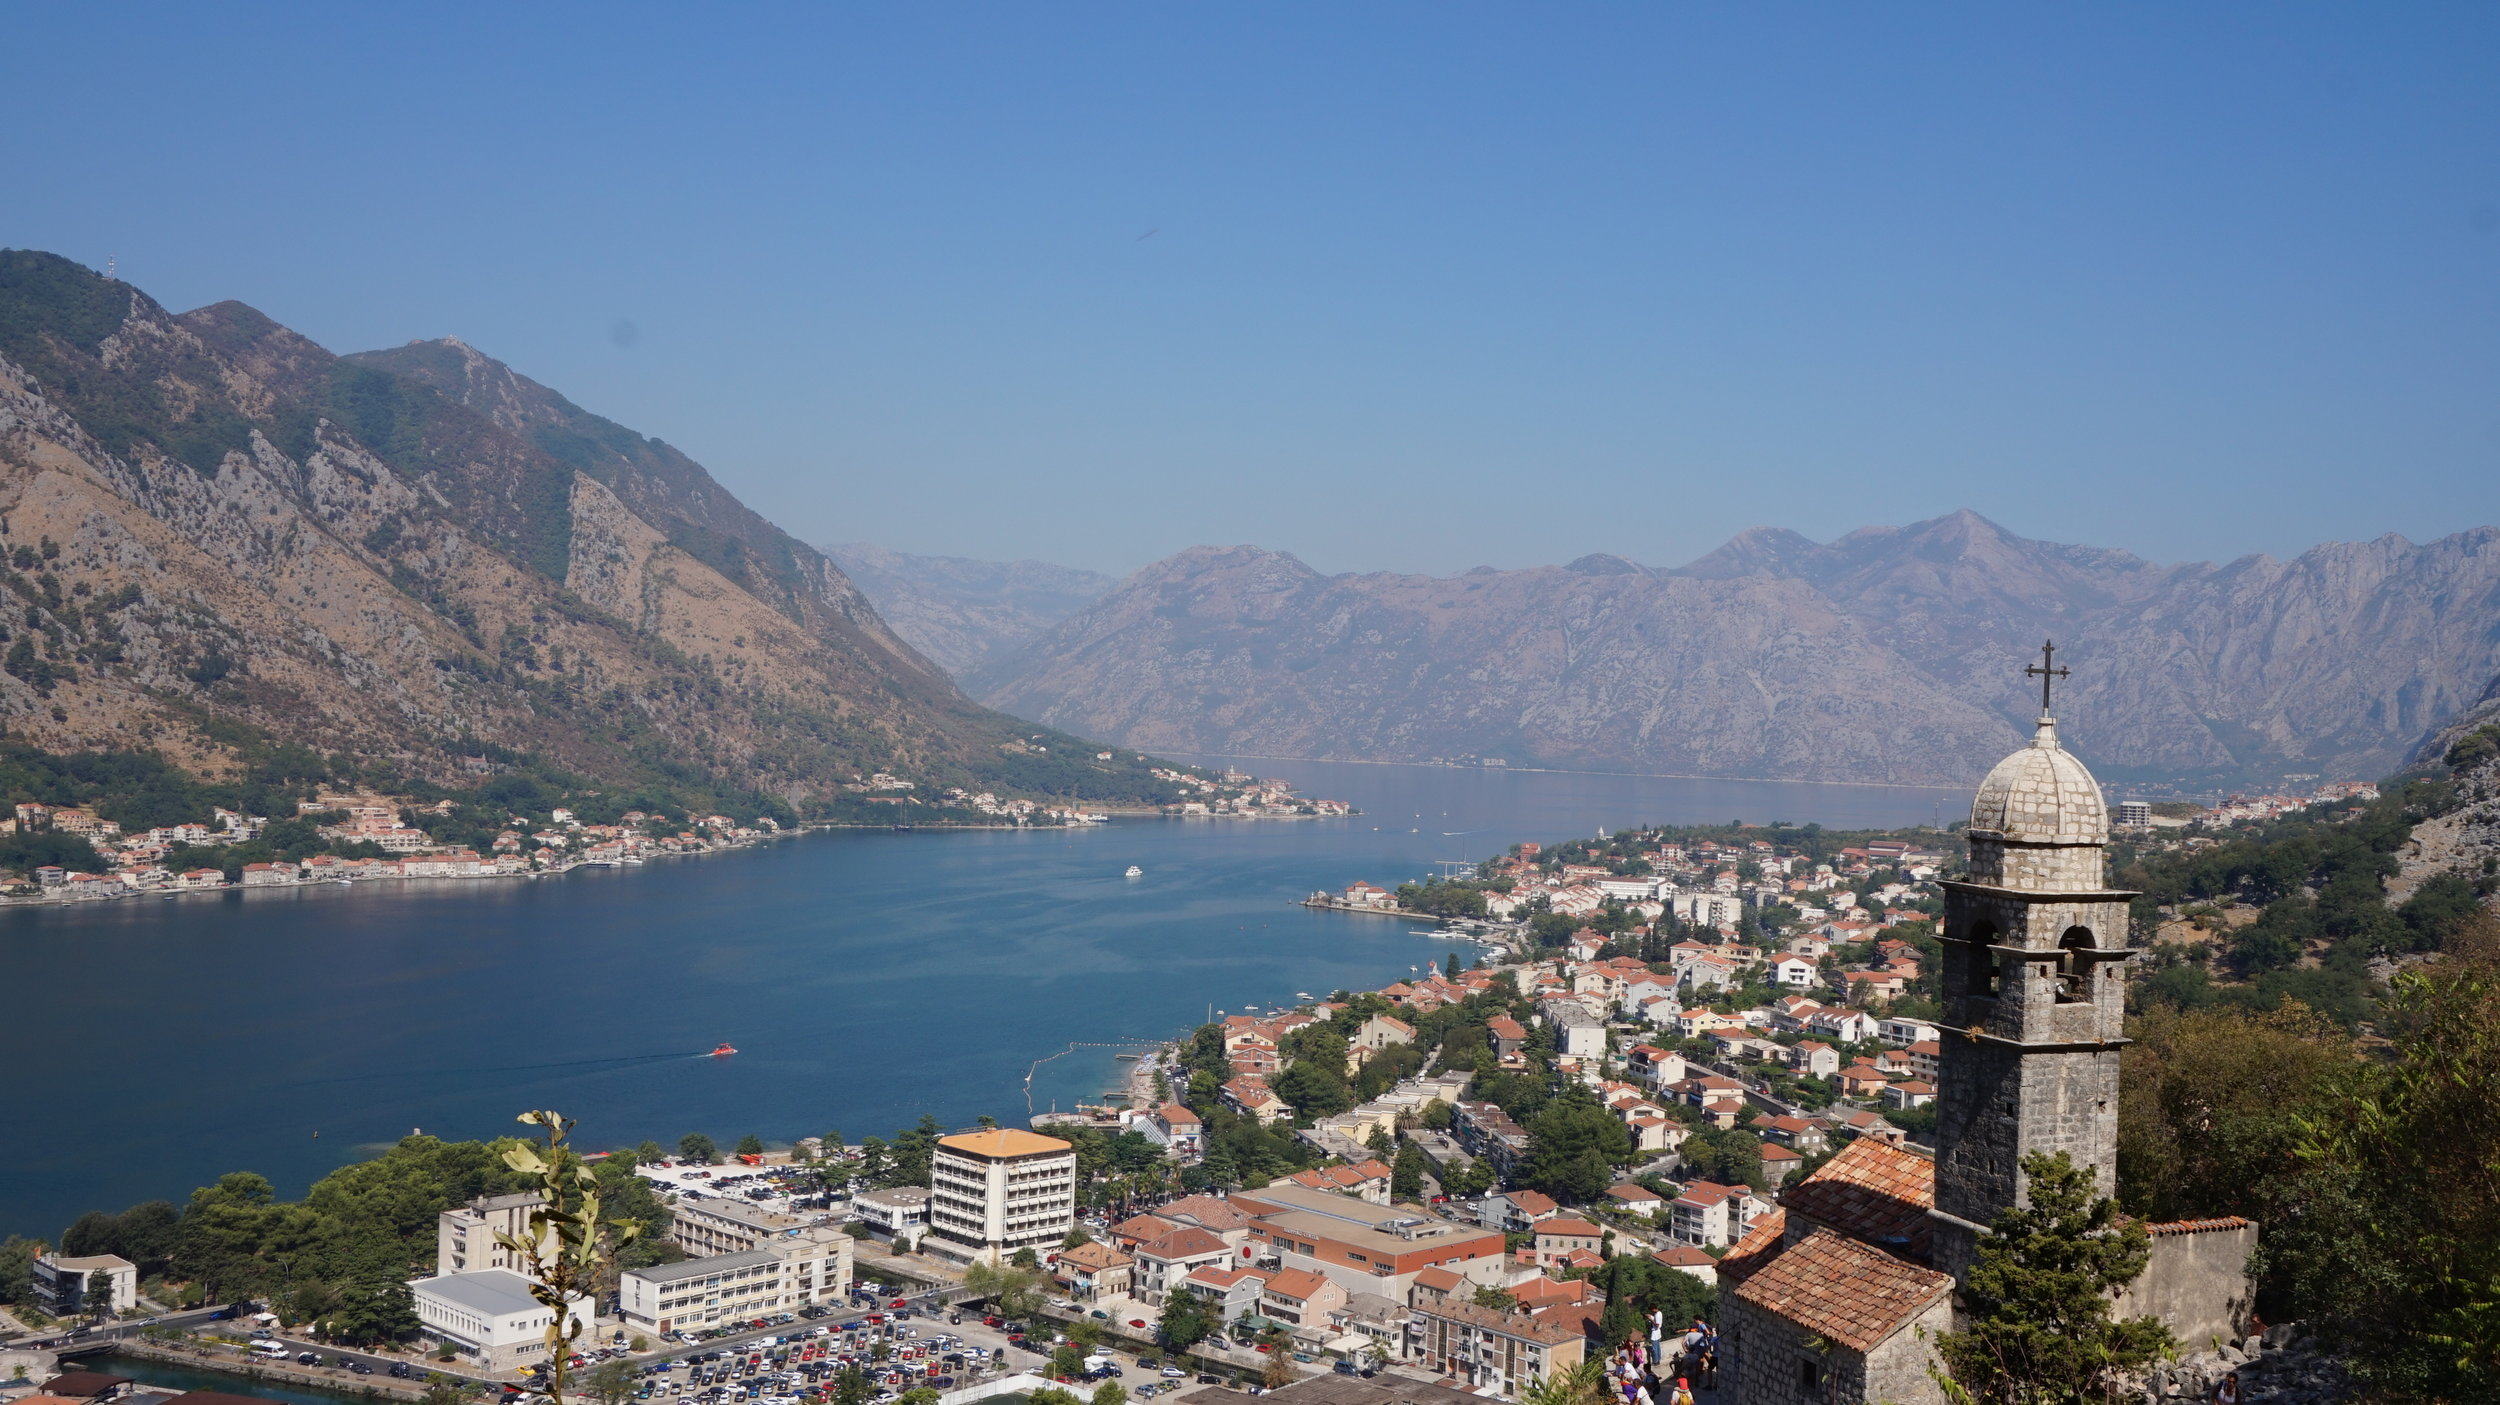 How to visit the bay of kotor on a budget - views of kotor